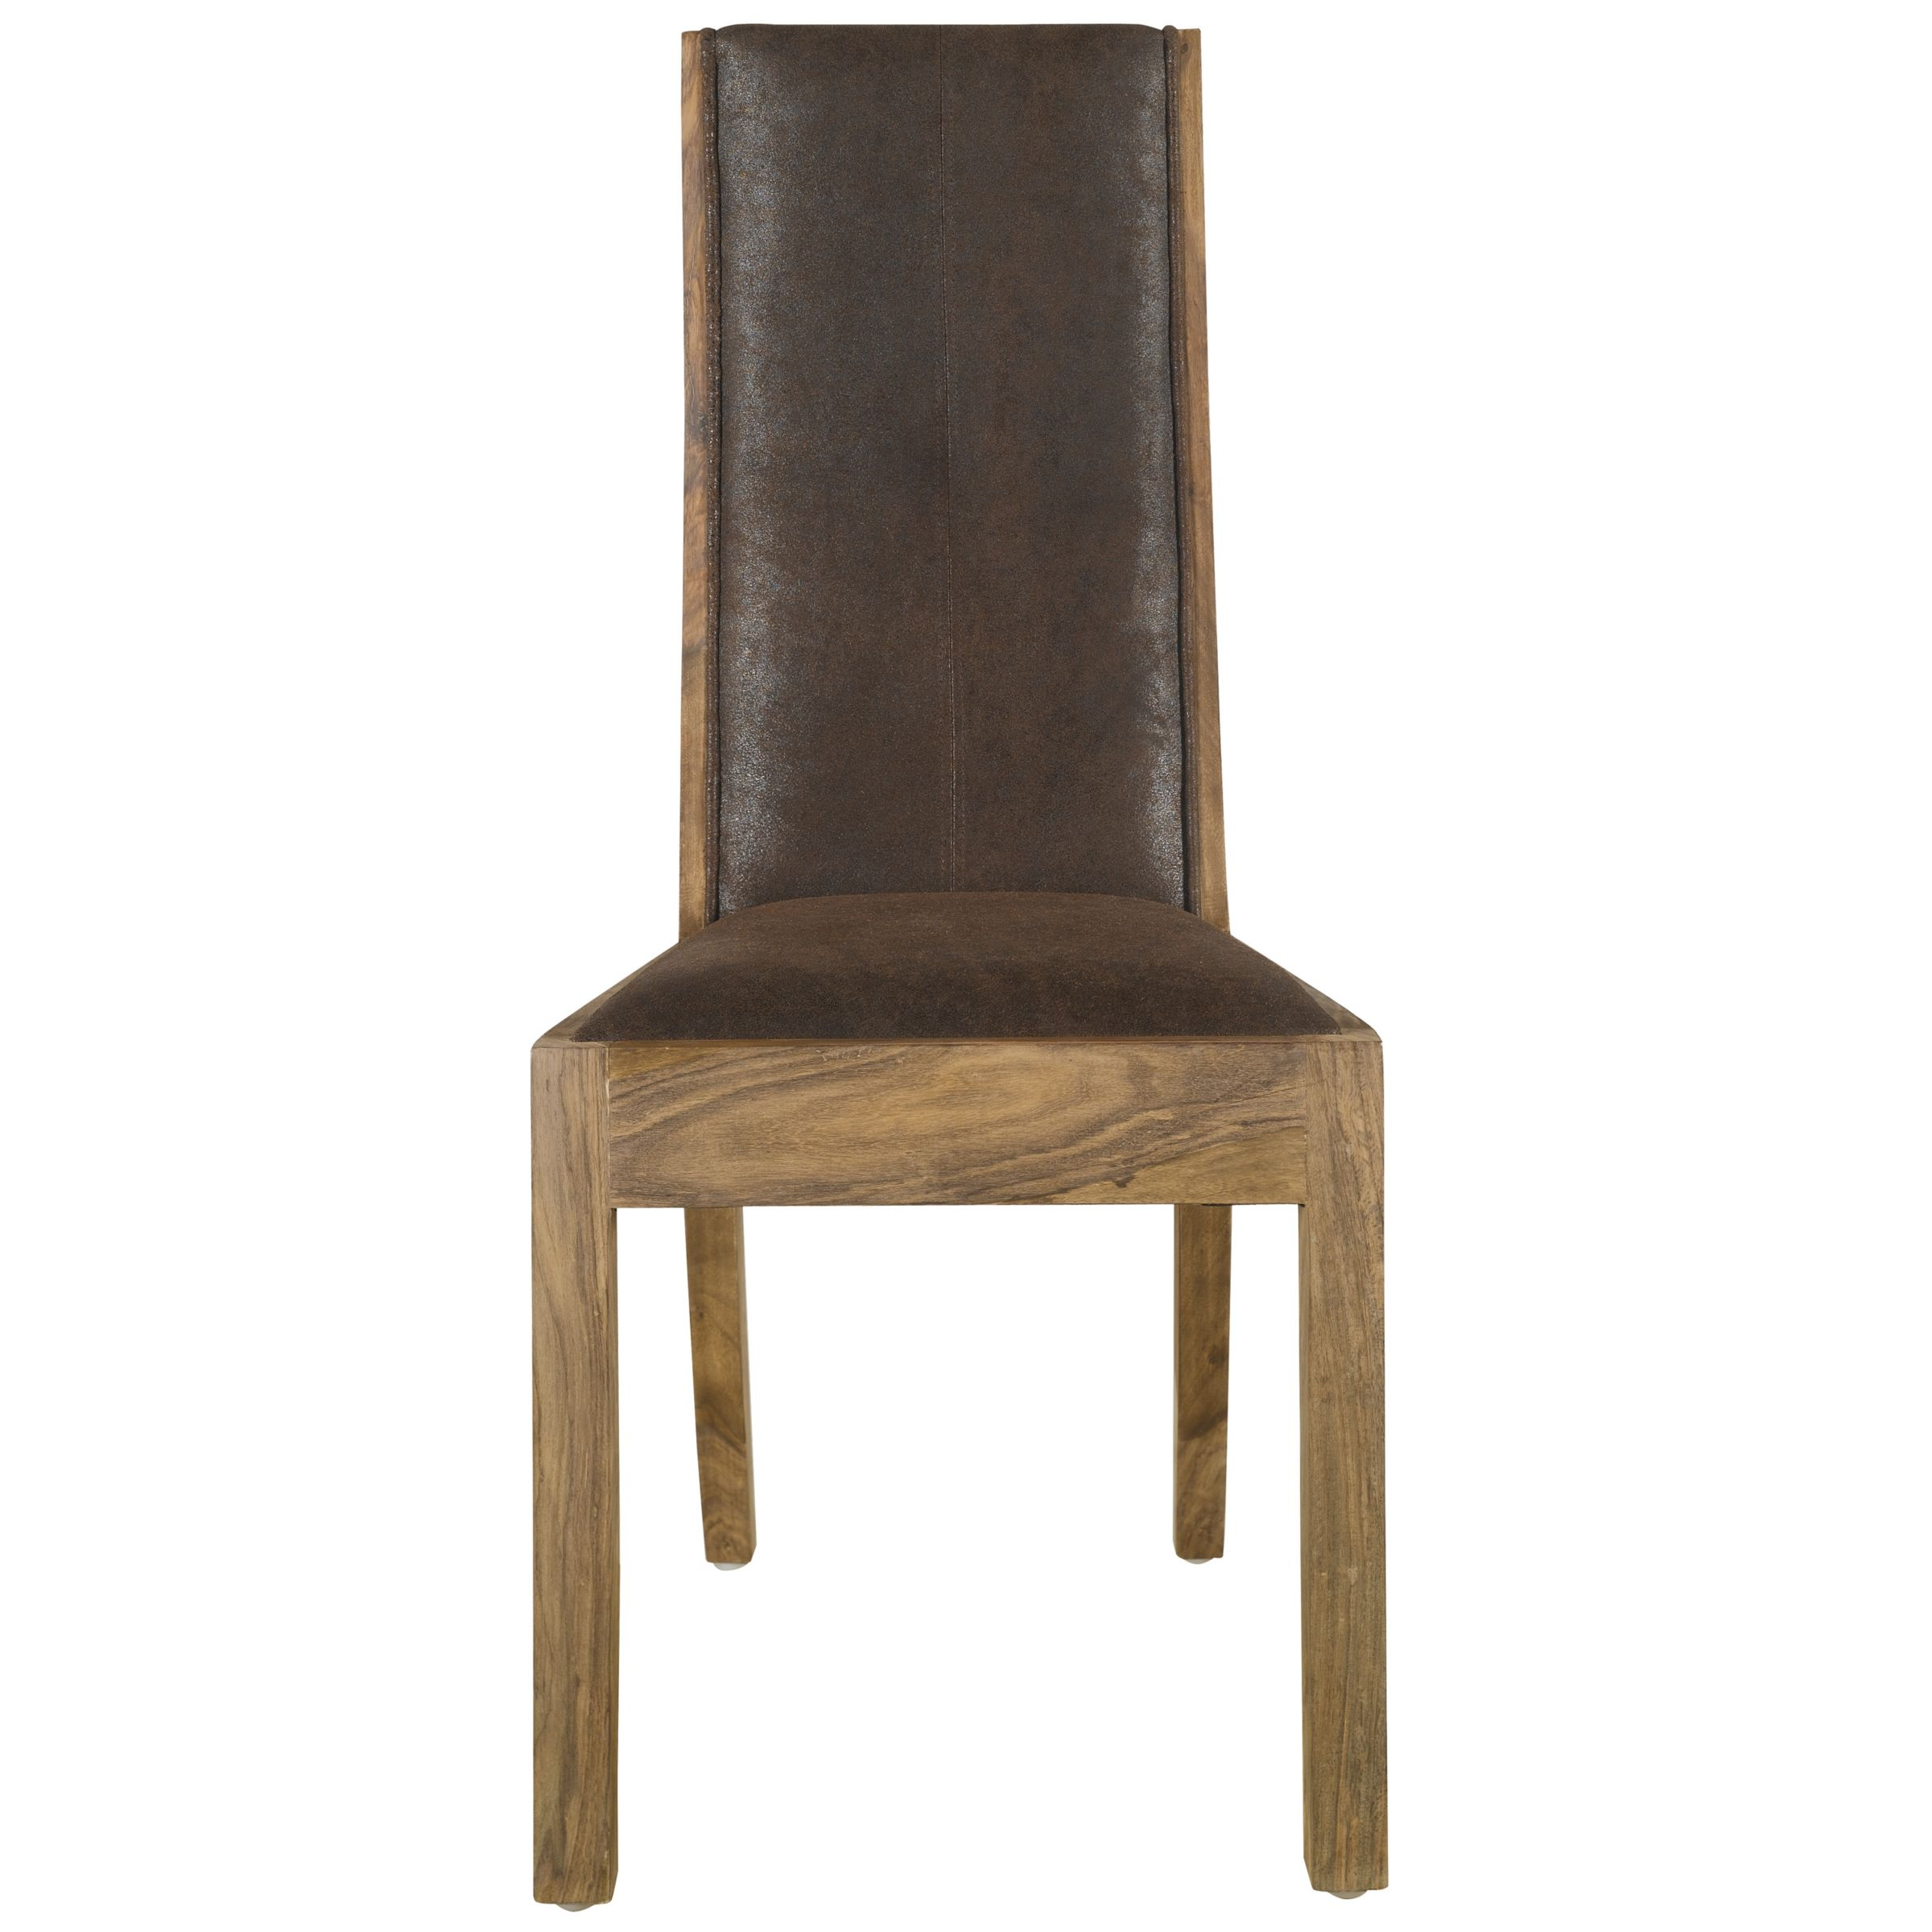 john lewis leather chairs reviews : 230414759zoom from www.comparestoreprices.co.uk size 2400 x 2400 jpeg 285kB